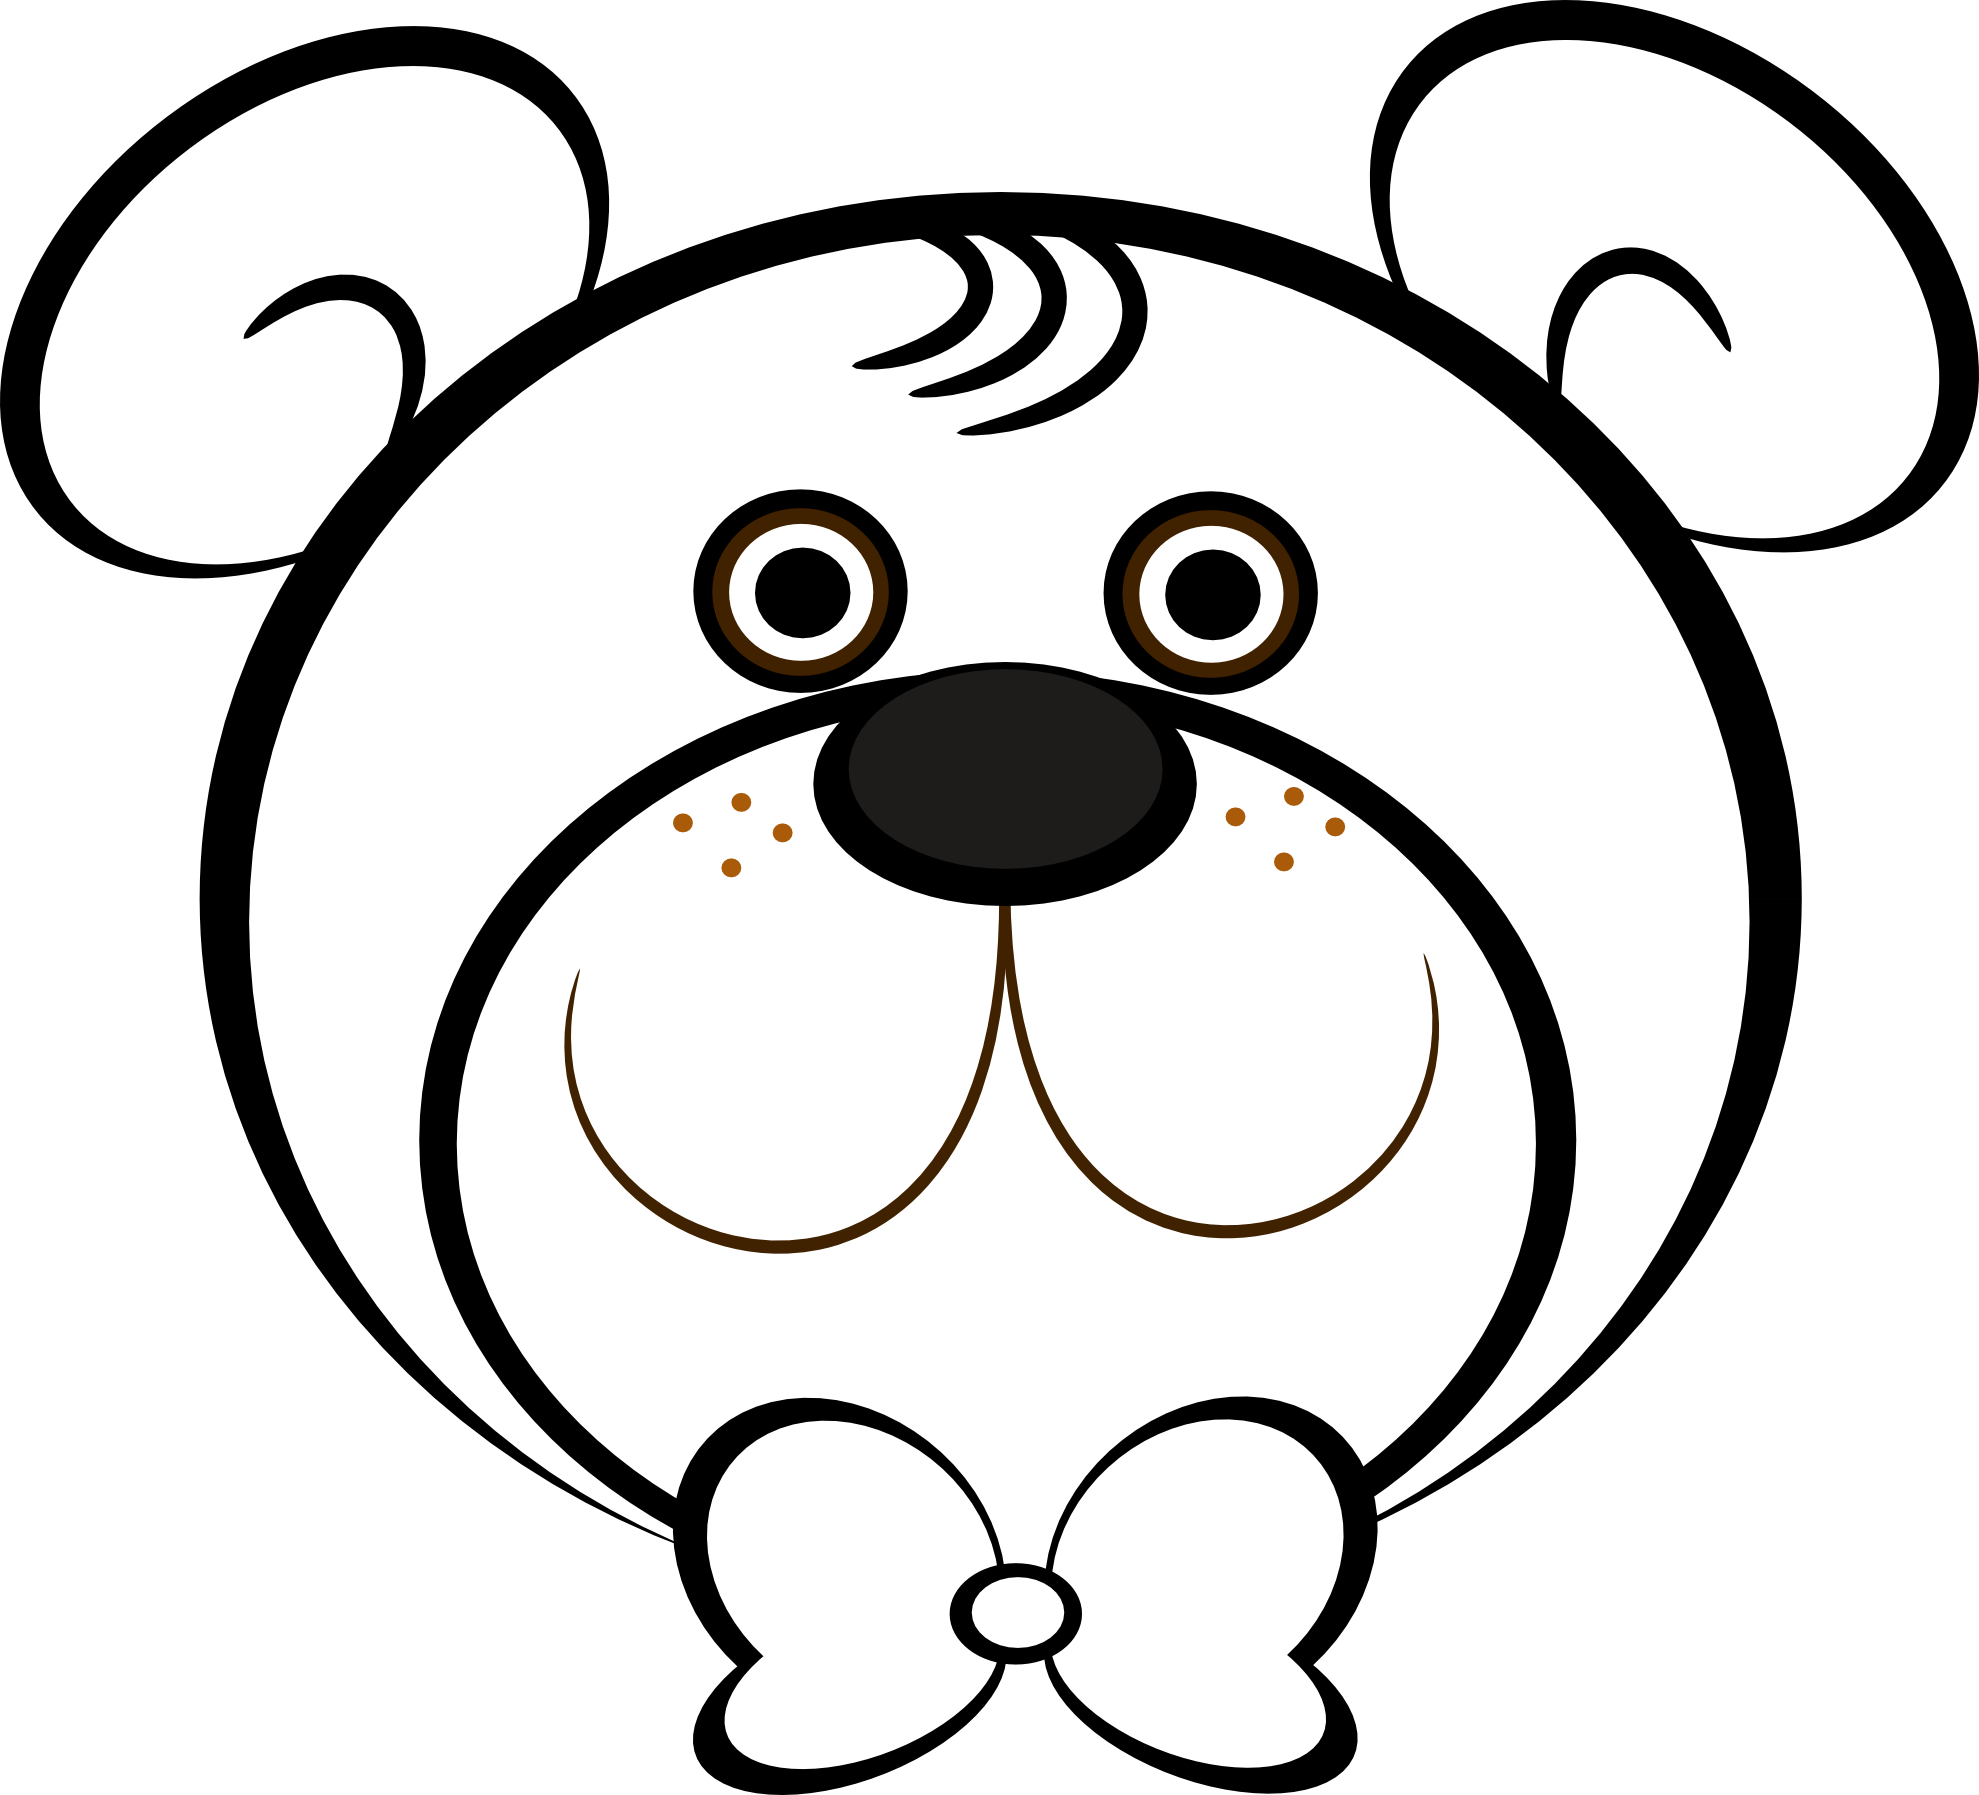 Download Teddy Bear Face Coloring.